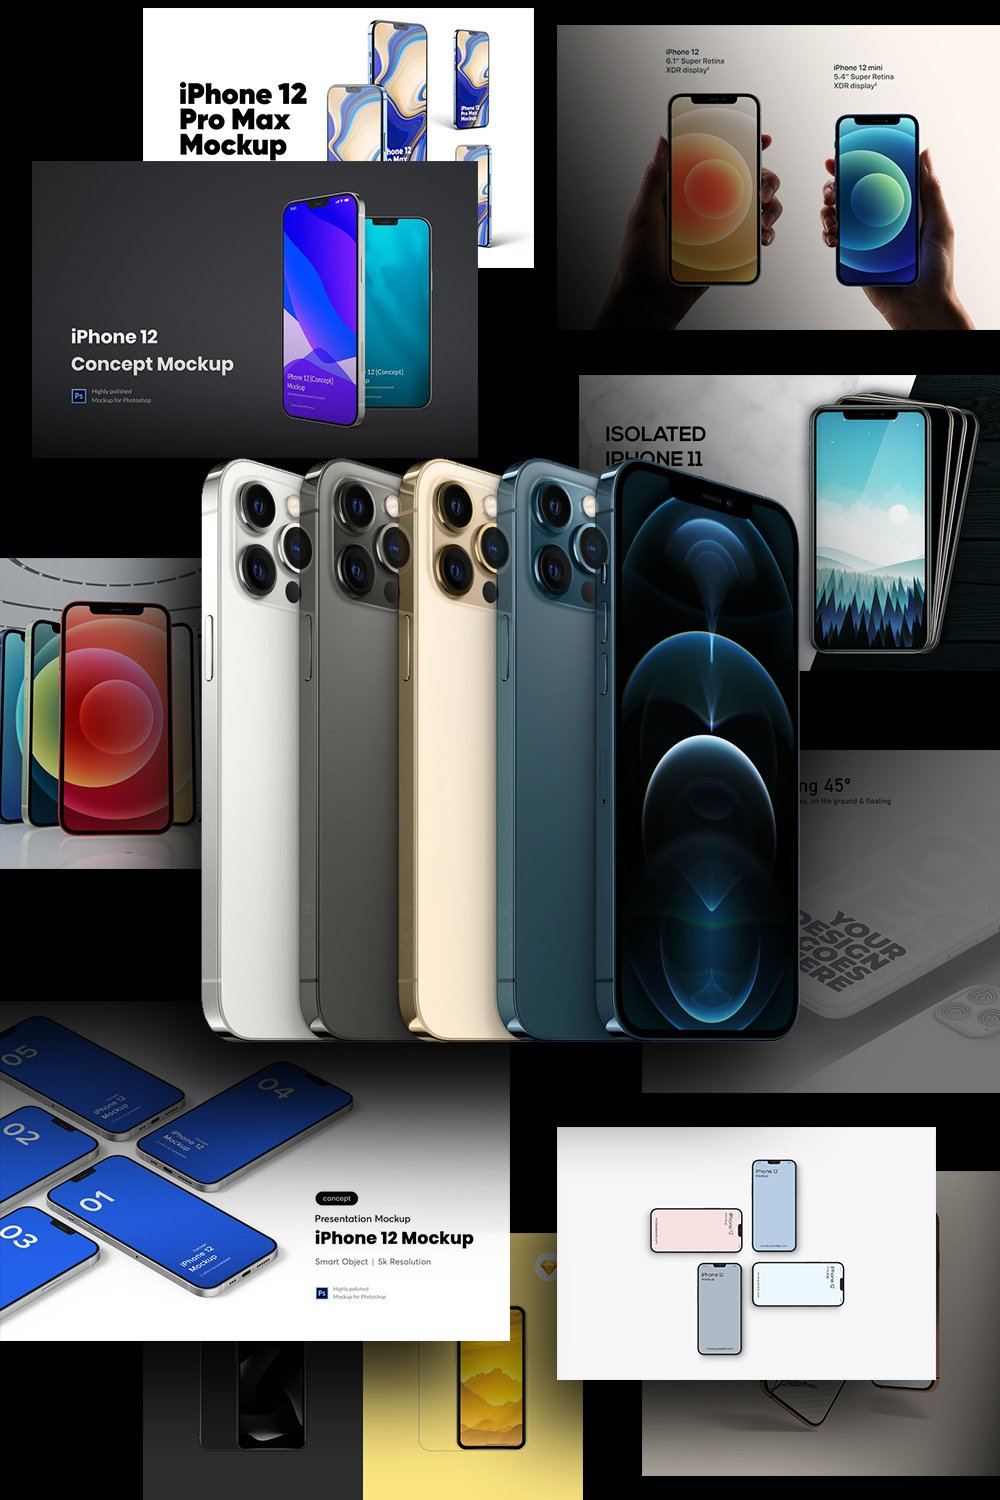 Best iPhone 12 Mockups Collection. Pinterest Image.